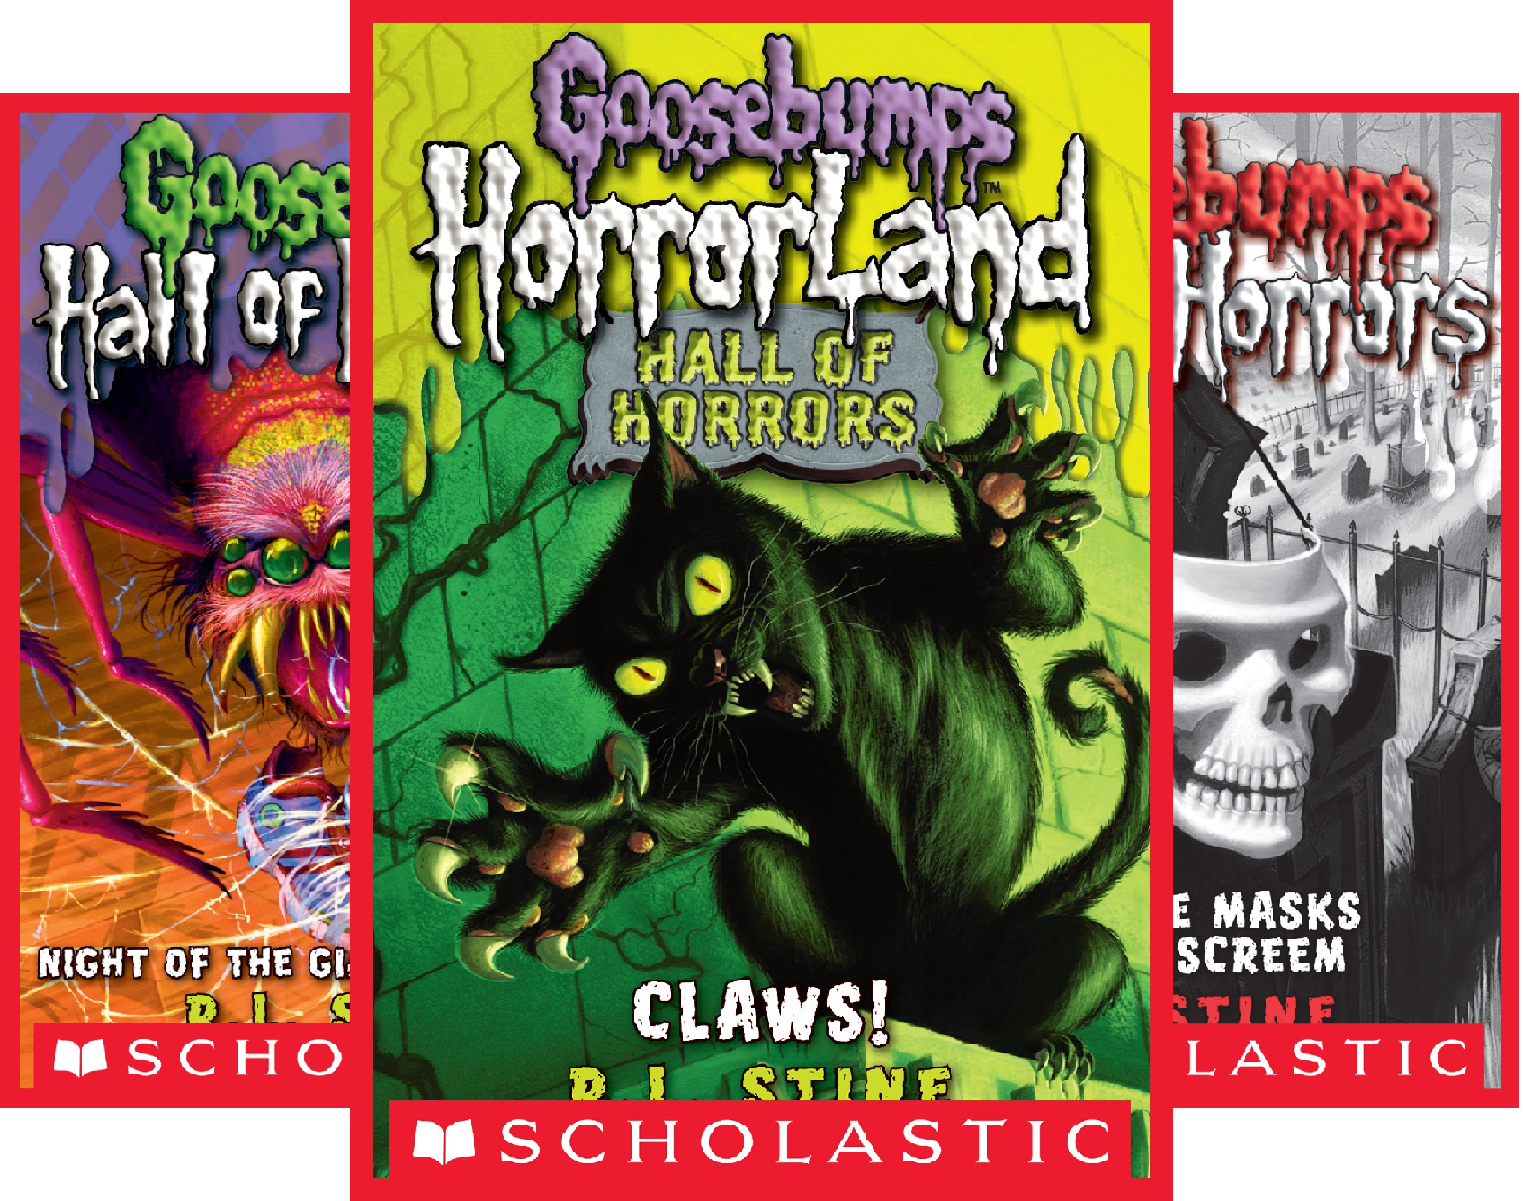 Goosebumps Hall of Horrors (6 Book Series)